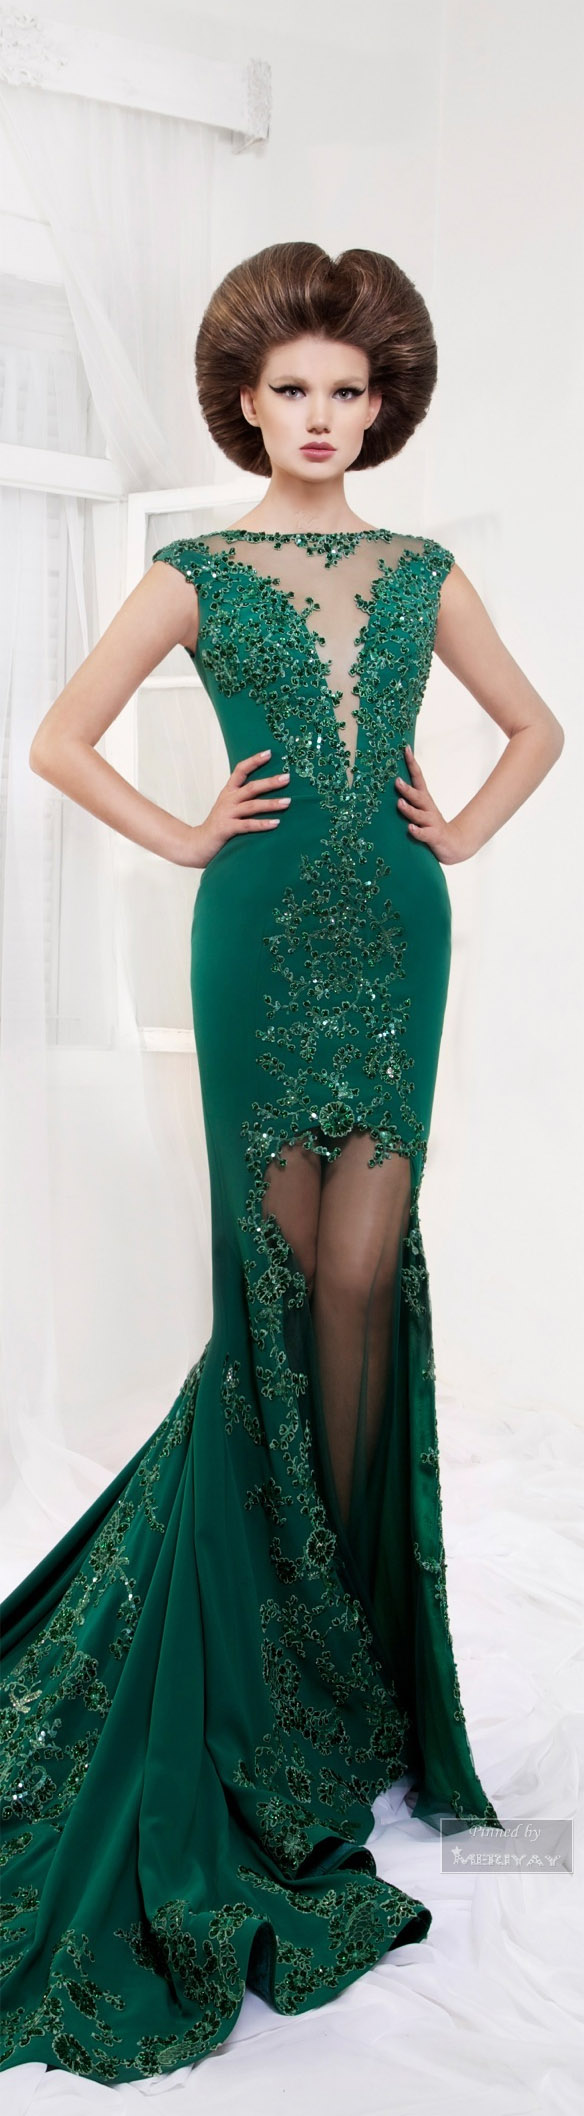 Tarek sinno haute couture pinterest gowns emeralds and formal